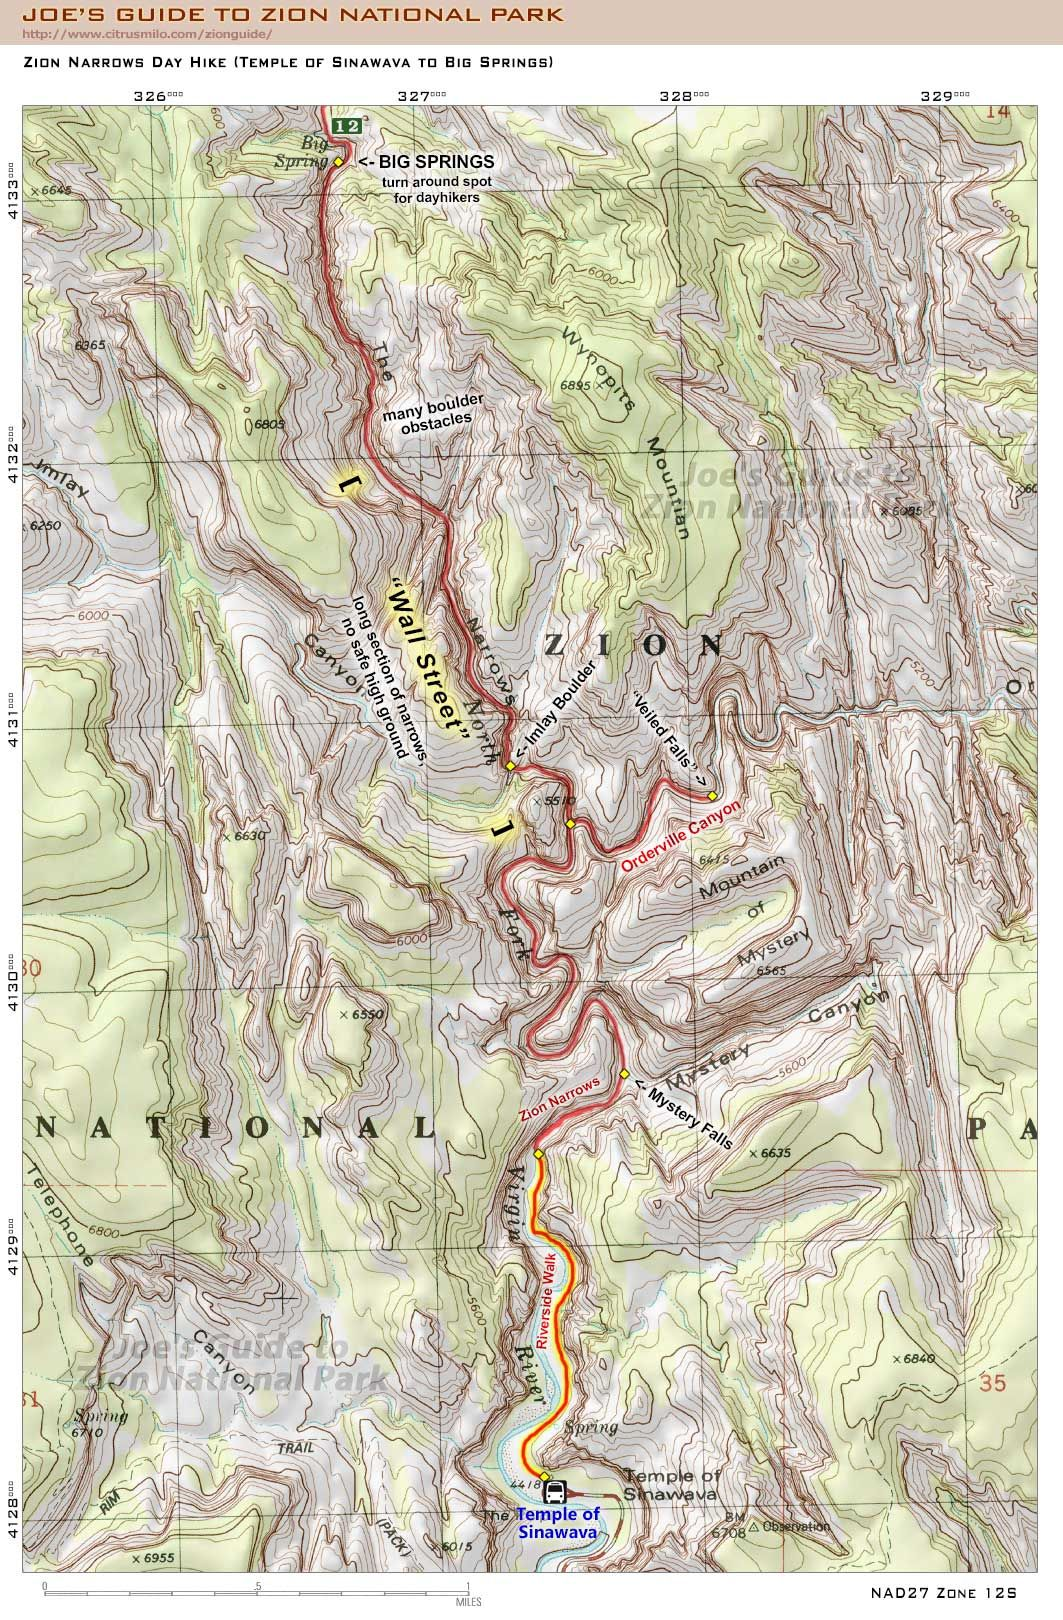 Zion Narrows Day Hike Map (Temple of Sinawava to Big Springs) | Go on